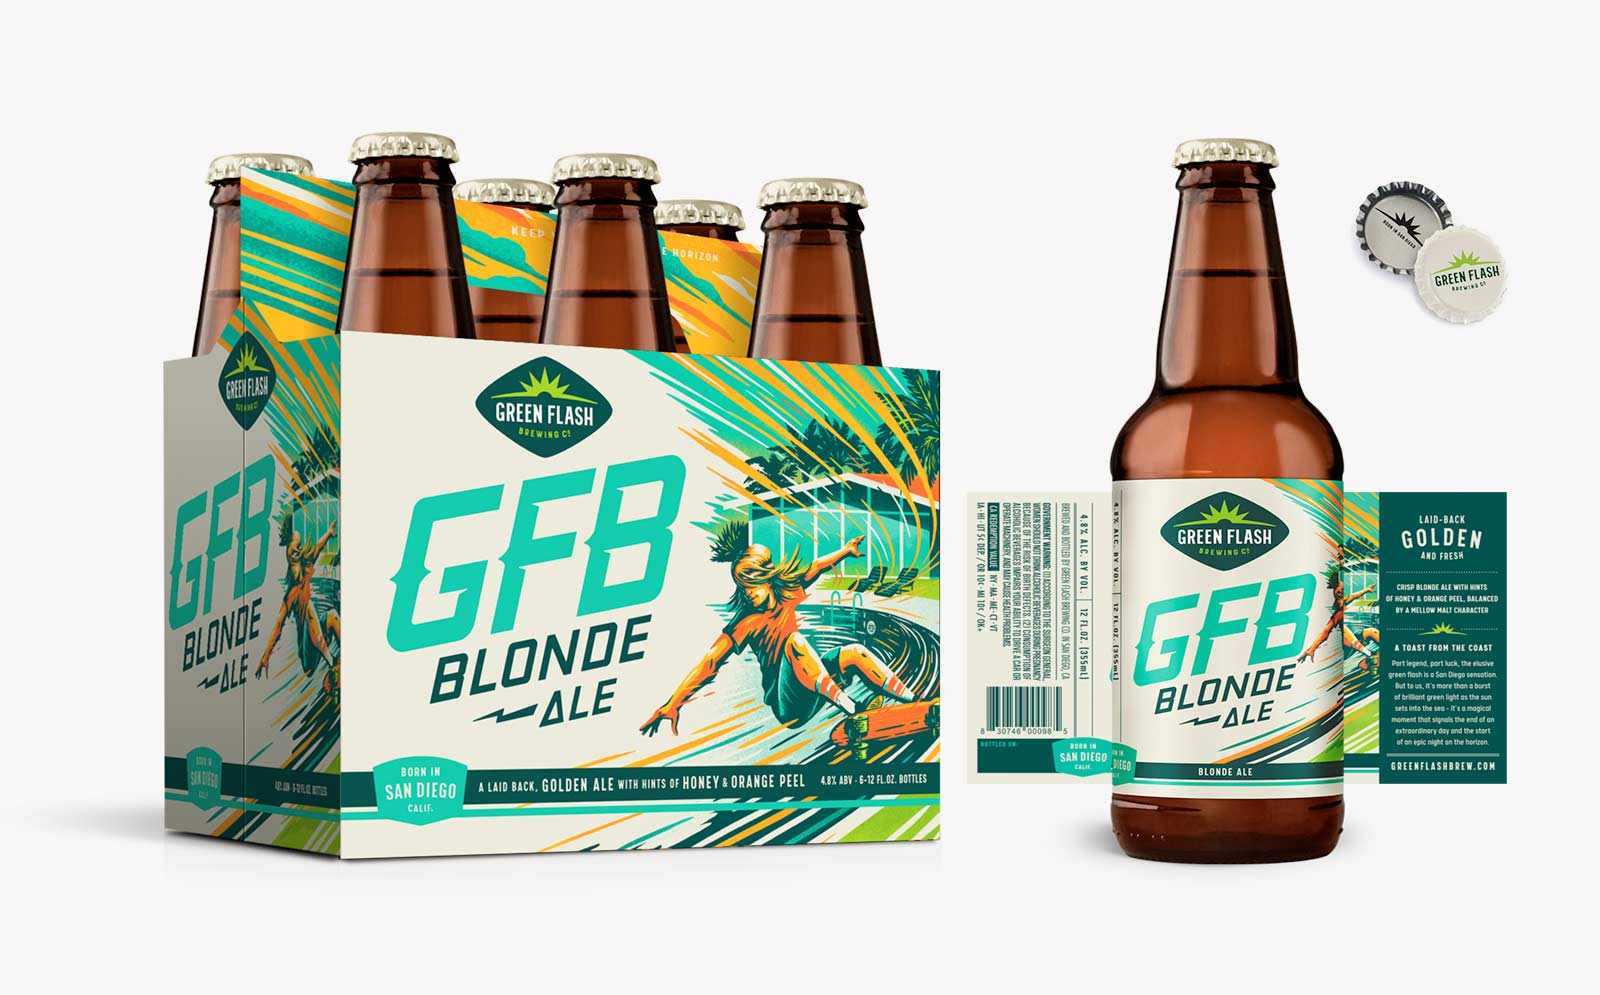 GFB Blonde Ale 6-pack, bottle label, can design, can box.